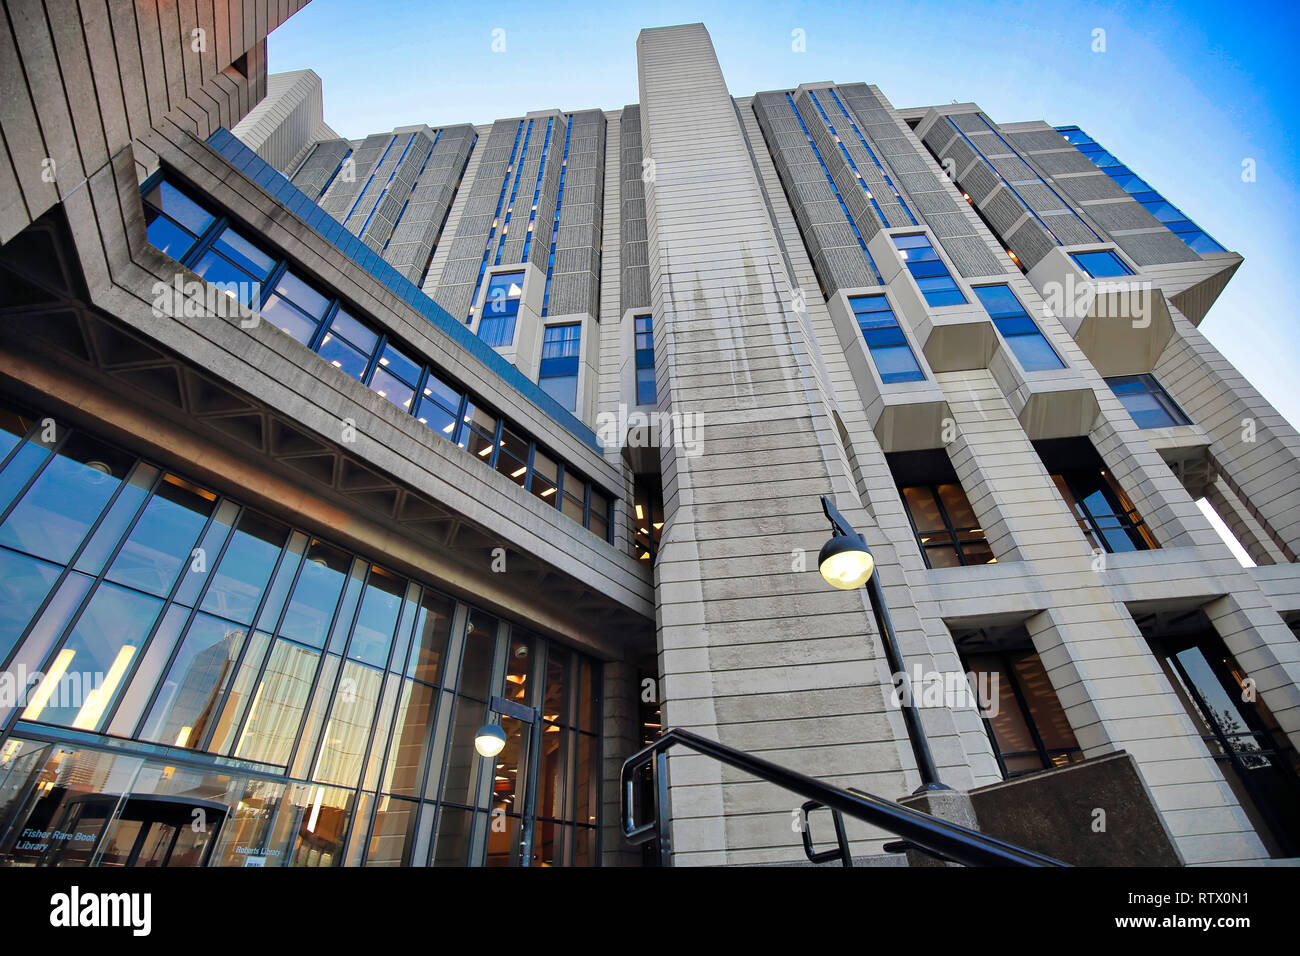 Toronto, Canada-March 1, 2018: Thomas Fisher Rare Book Library building in the University of Toronto, the largest repository of publicly accessible ra - Stock Image